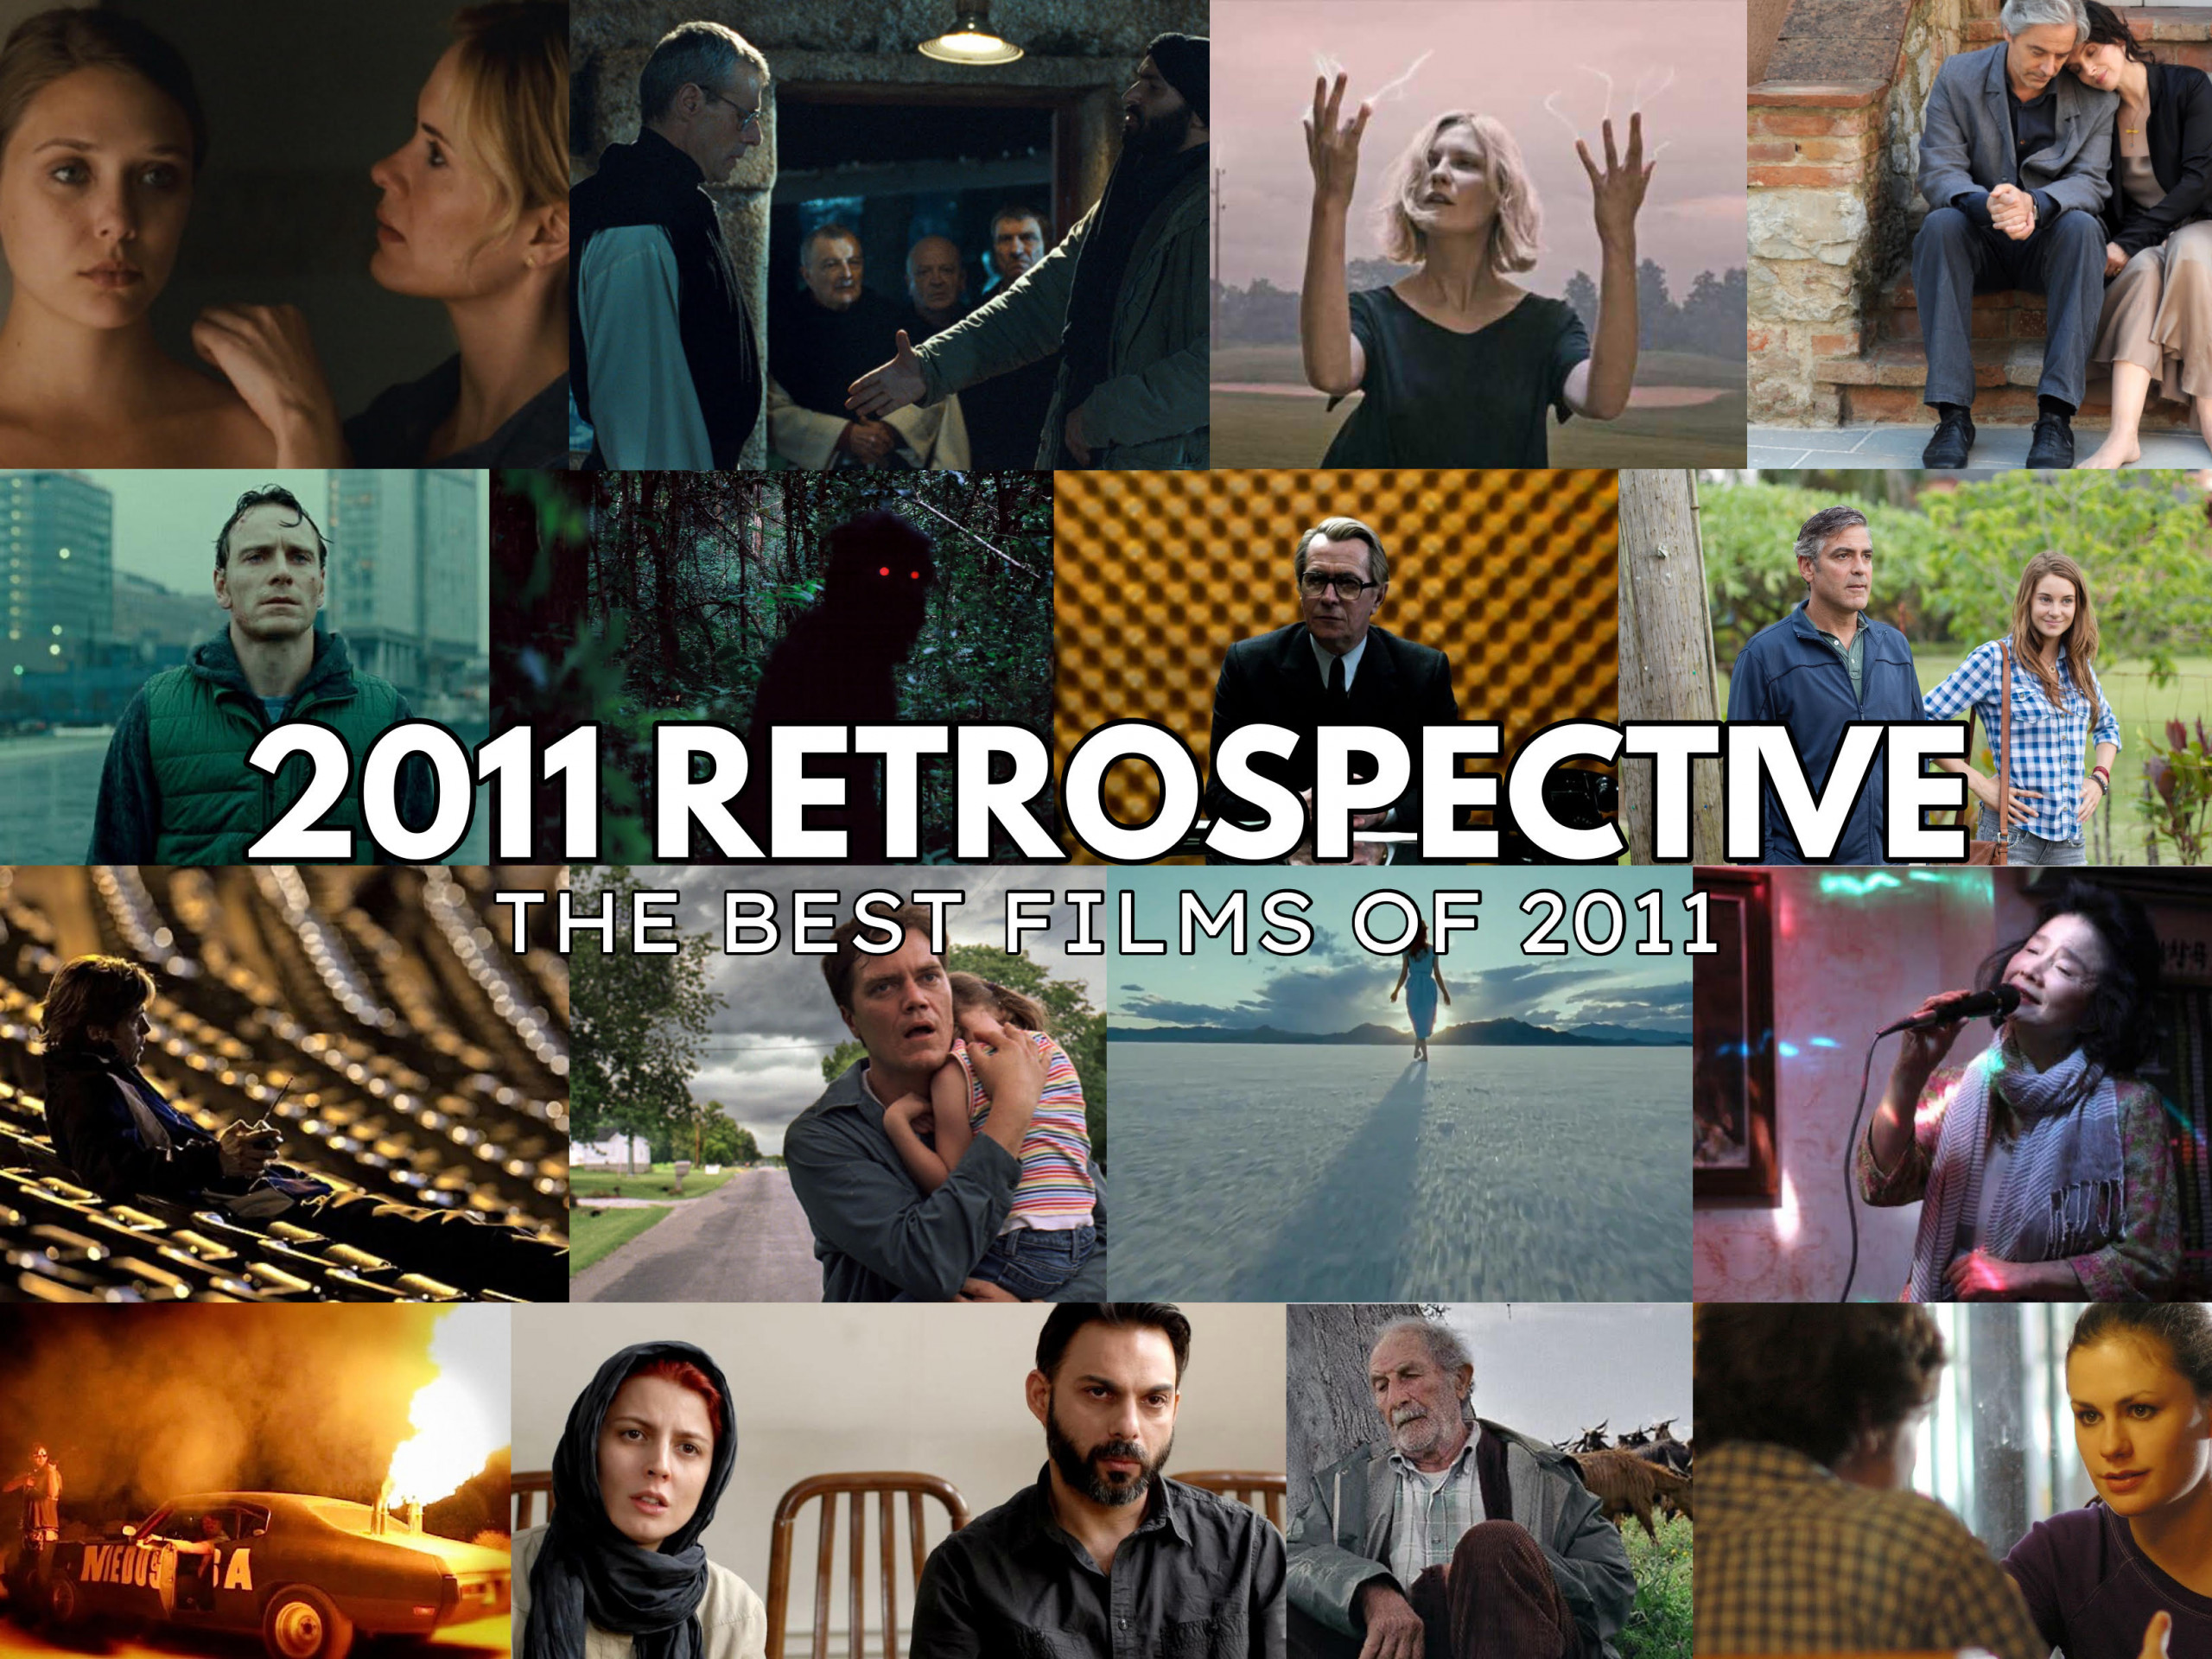 2011 Retrospective: The Best Films of 2011–10 Year Anniversary